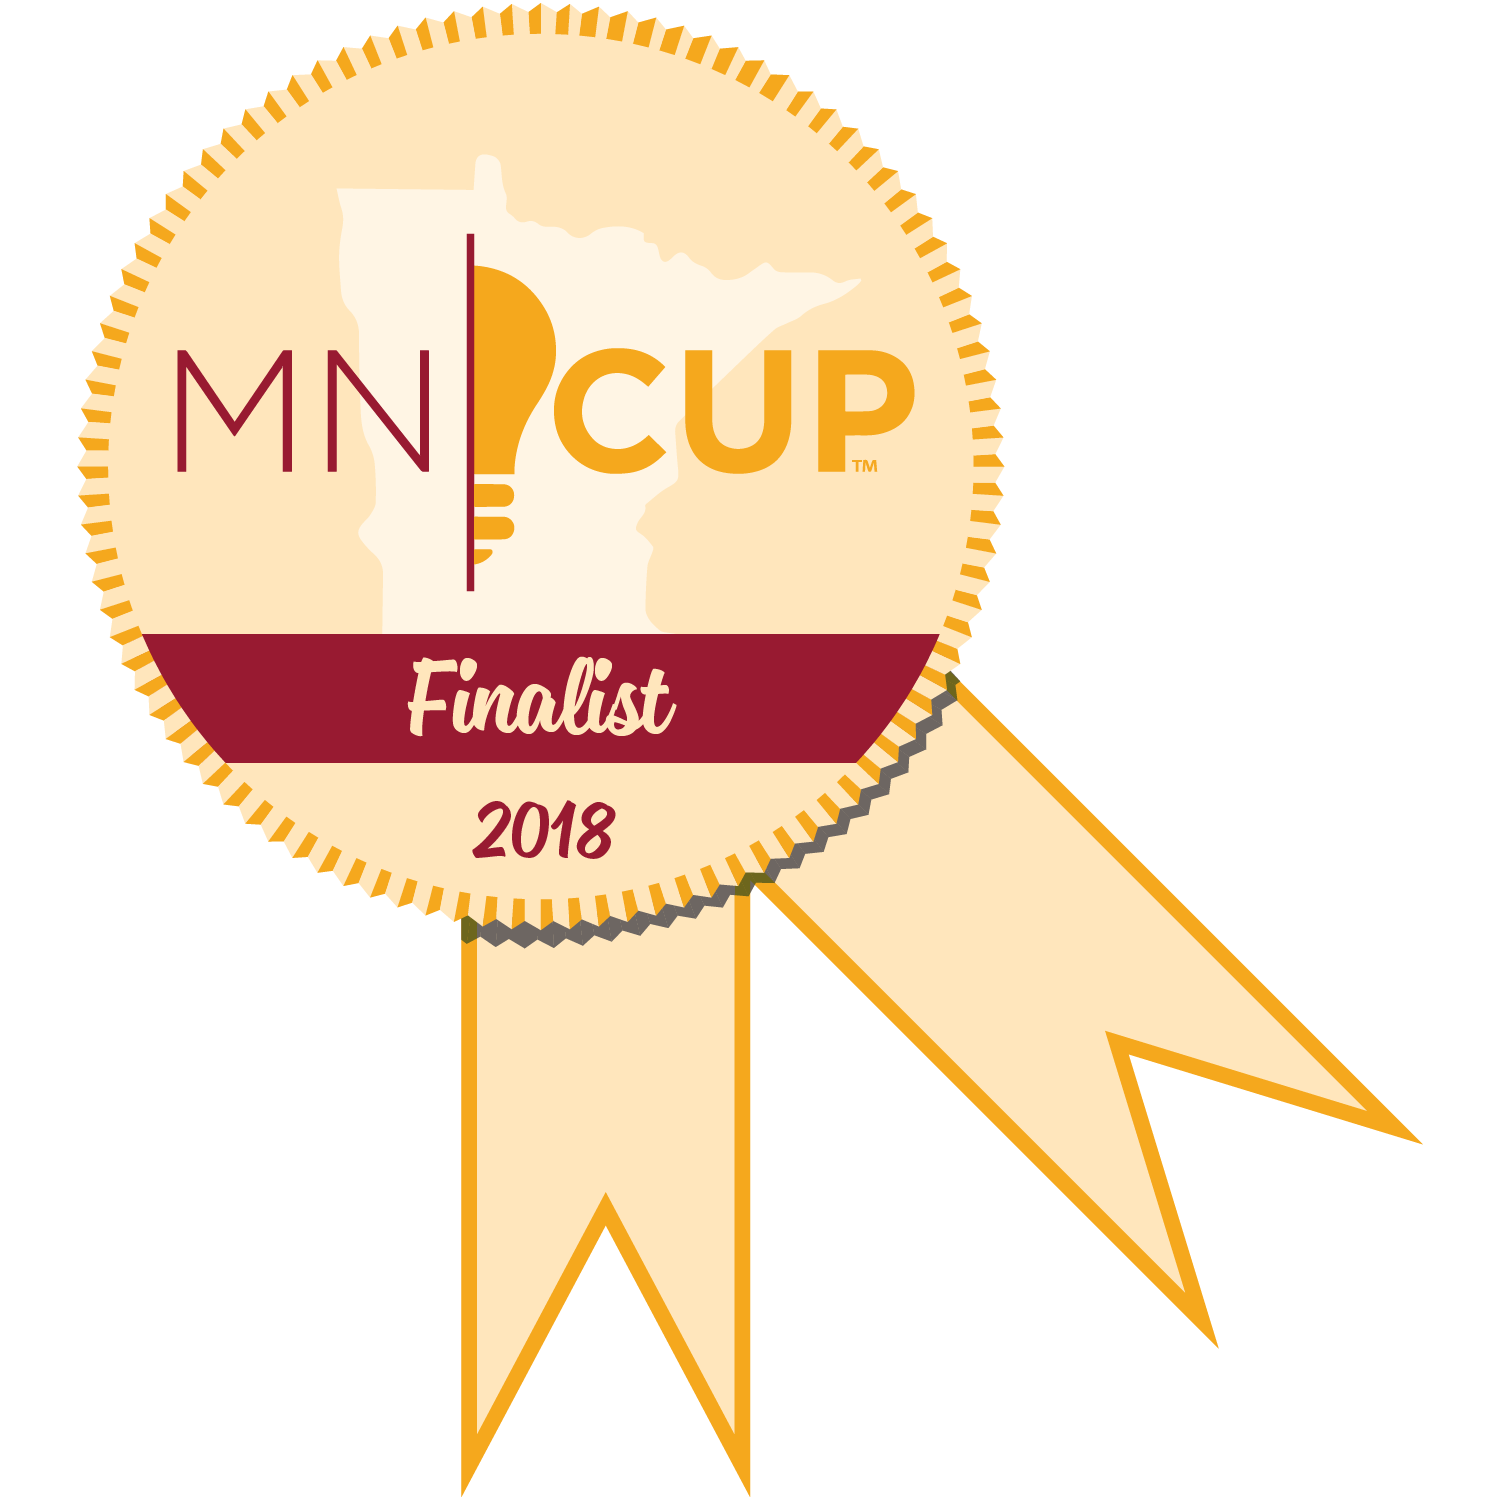 MNCupfinalist_badge-2018.png